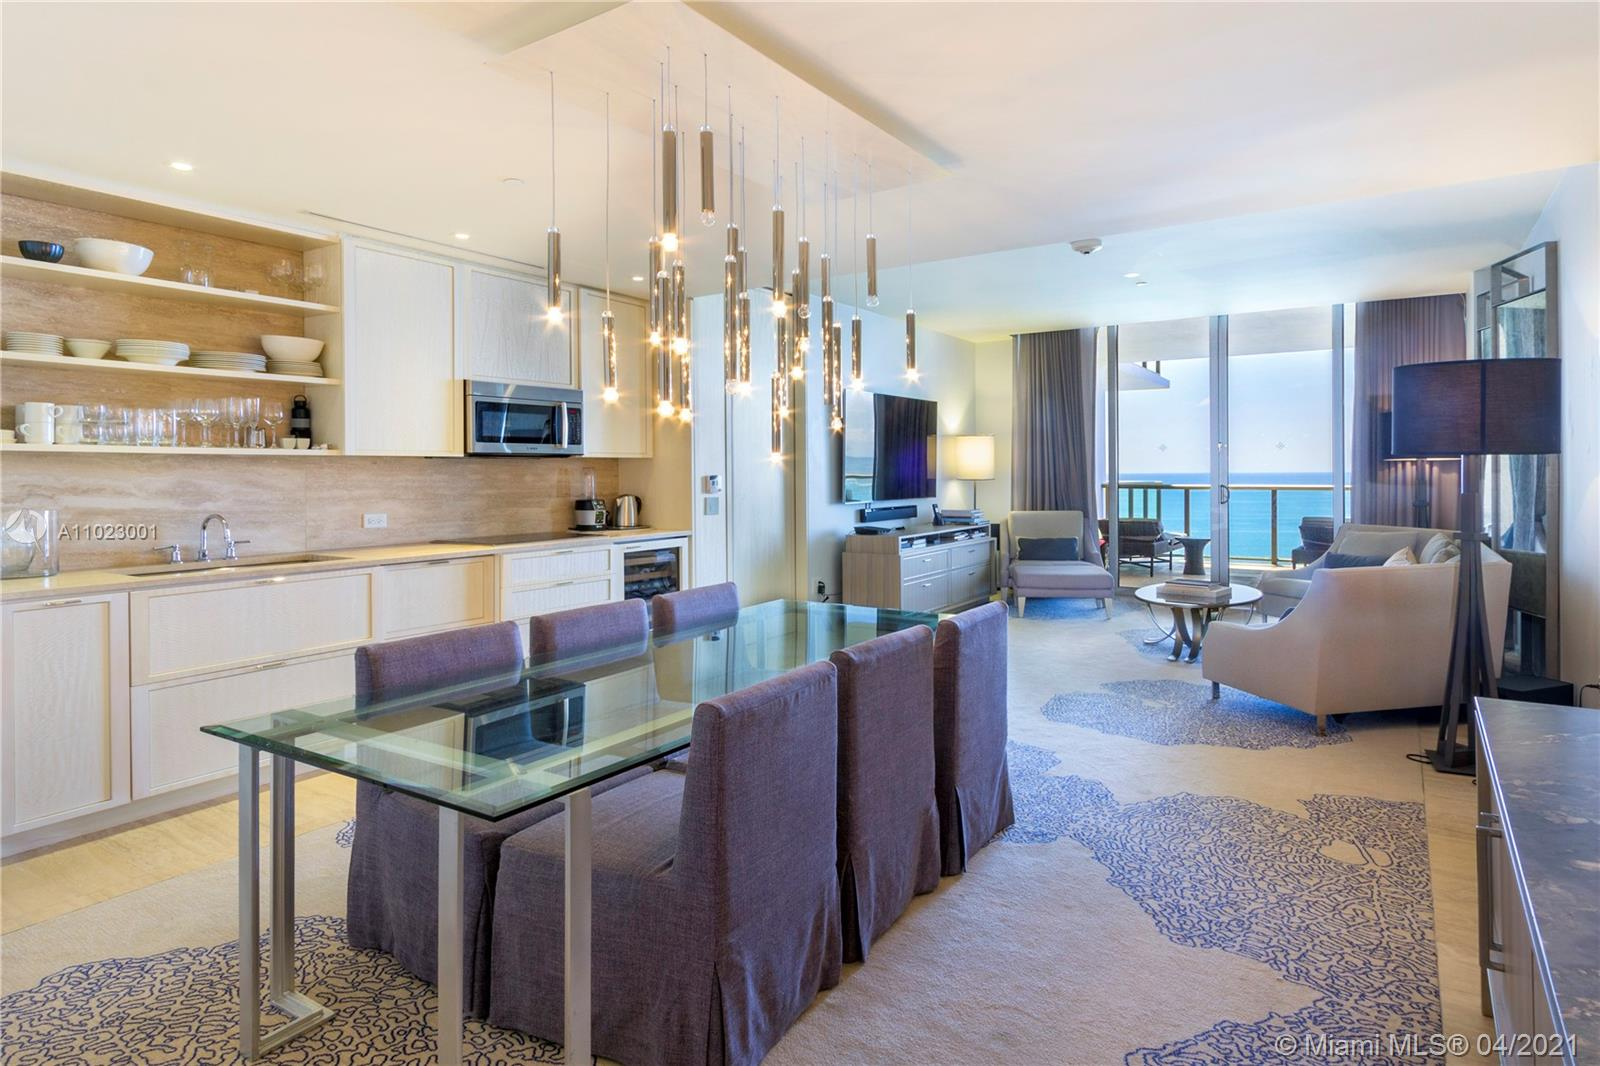 St. Regis exclusive SE exposure fully furnished 1 Bedroom plus Den with 2 full bathrooms condo-hotel unit. Comes with fully equipped kitchen and bathrooms essentials for turn key ease, signature butler service, 12,000 Sqft superb Remede Spa, State of the art fitness center, personal limo service, gourmet dining, nine acres of gardens with 600 Feet ocean frontage and full service ate the pool/beach area. Enter the world of privilege & sophistication that St Regis is !!!